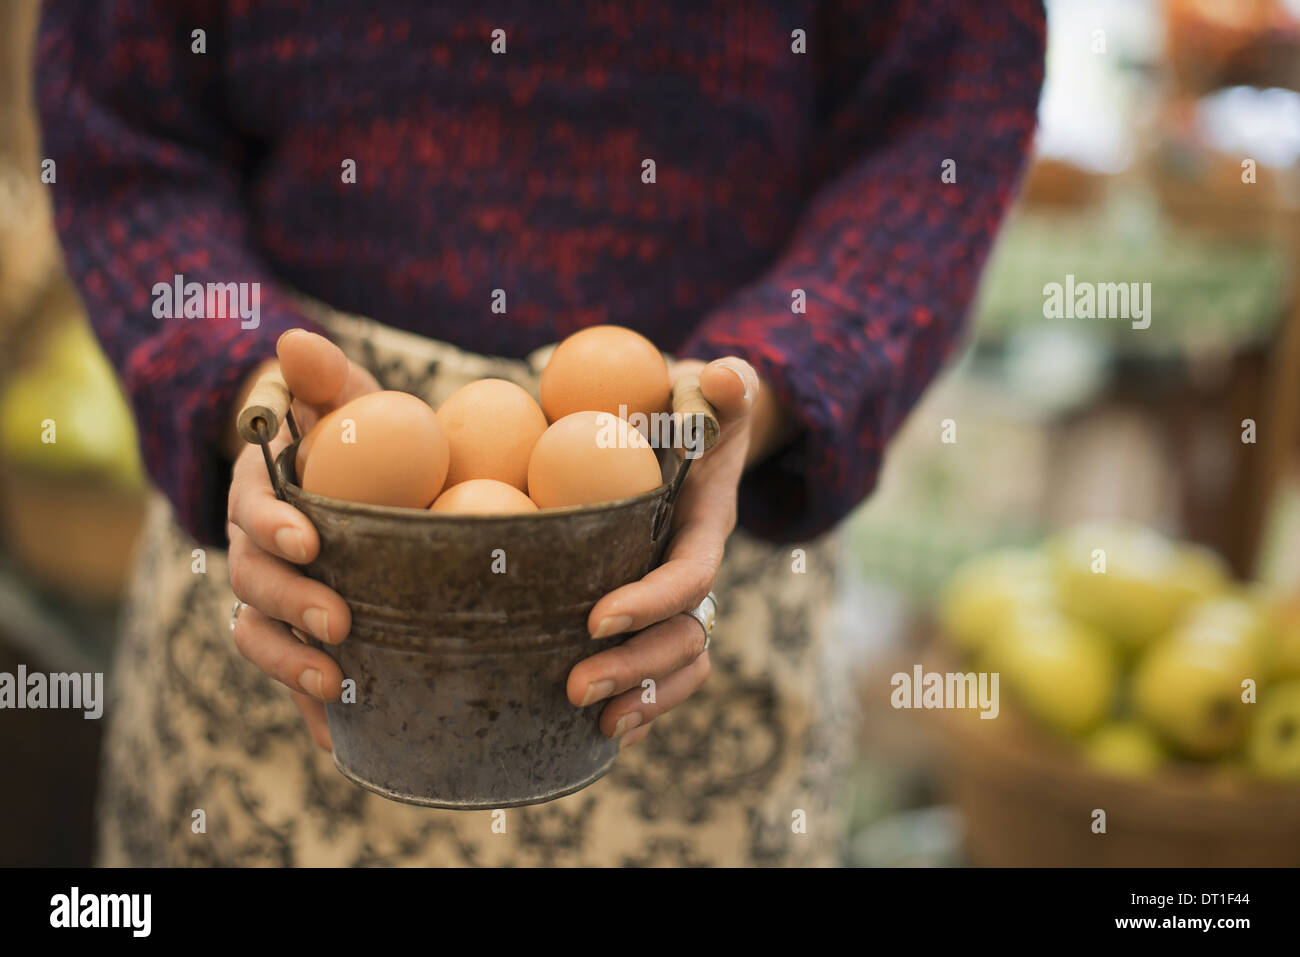 Organic Farmer at Work A woman carrying a container of eggs - Stock Image